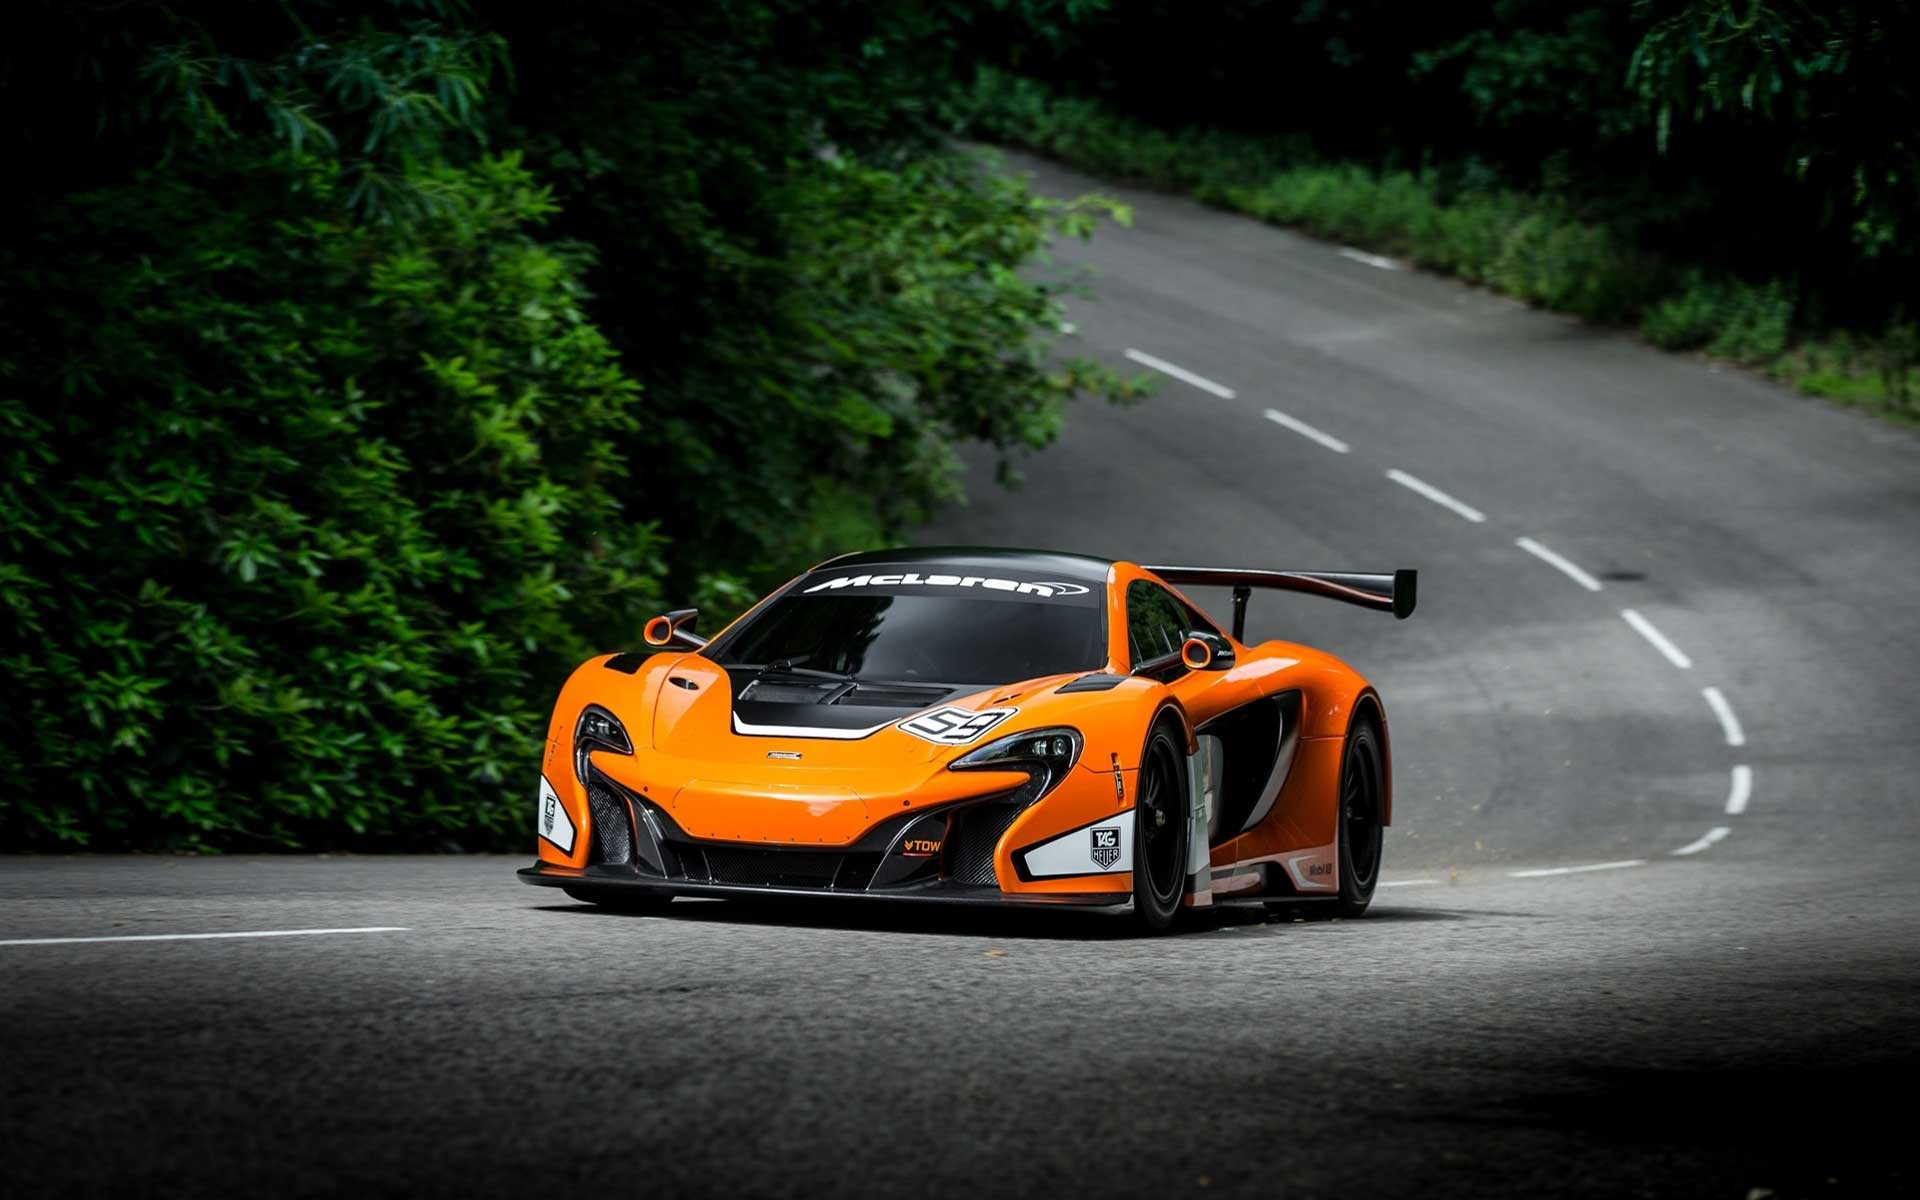 HD Wallpapers For Pc Cars